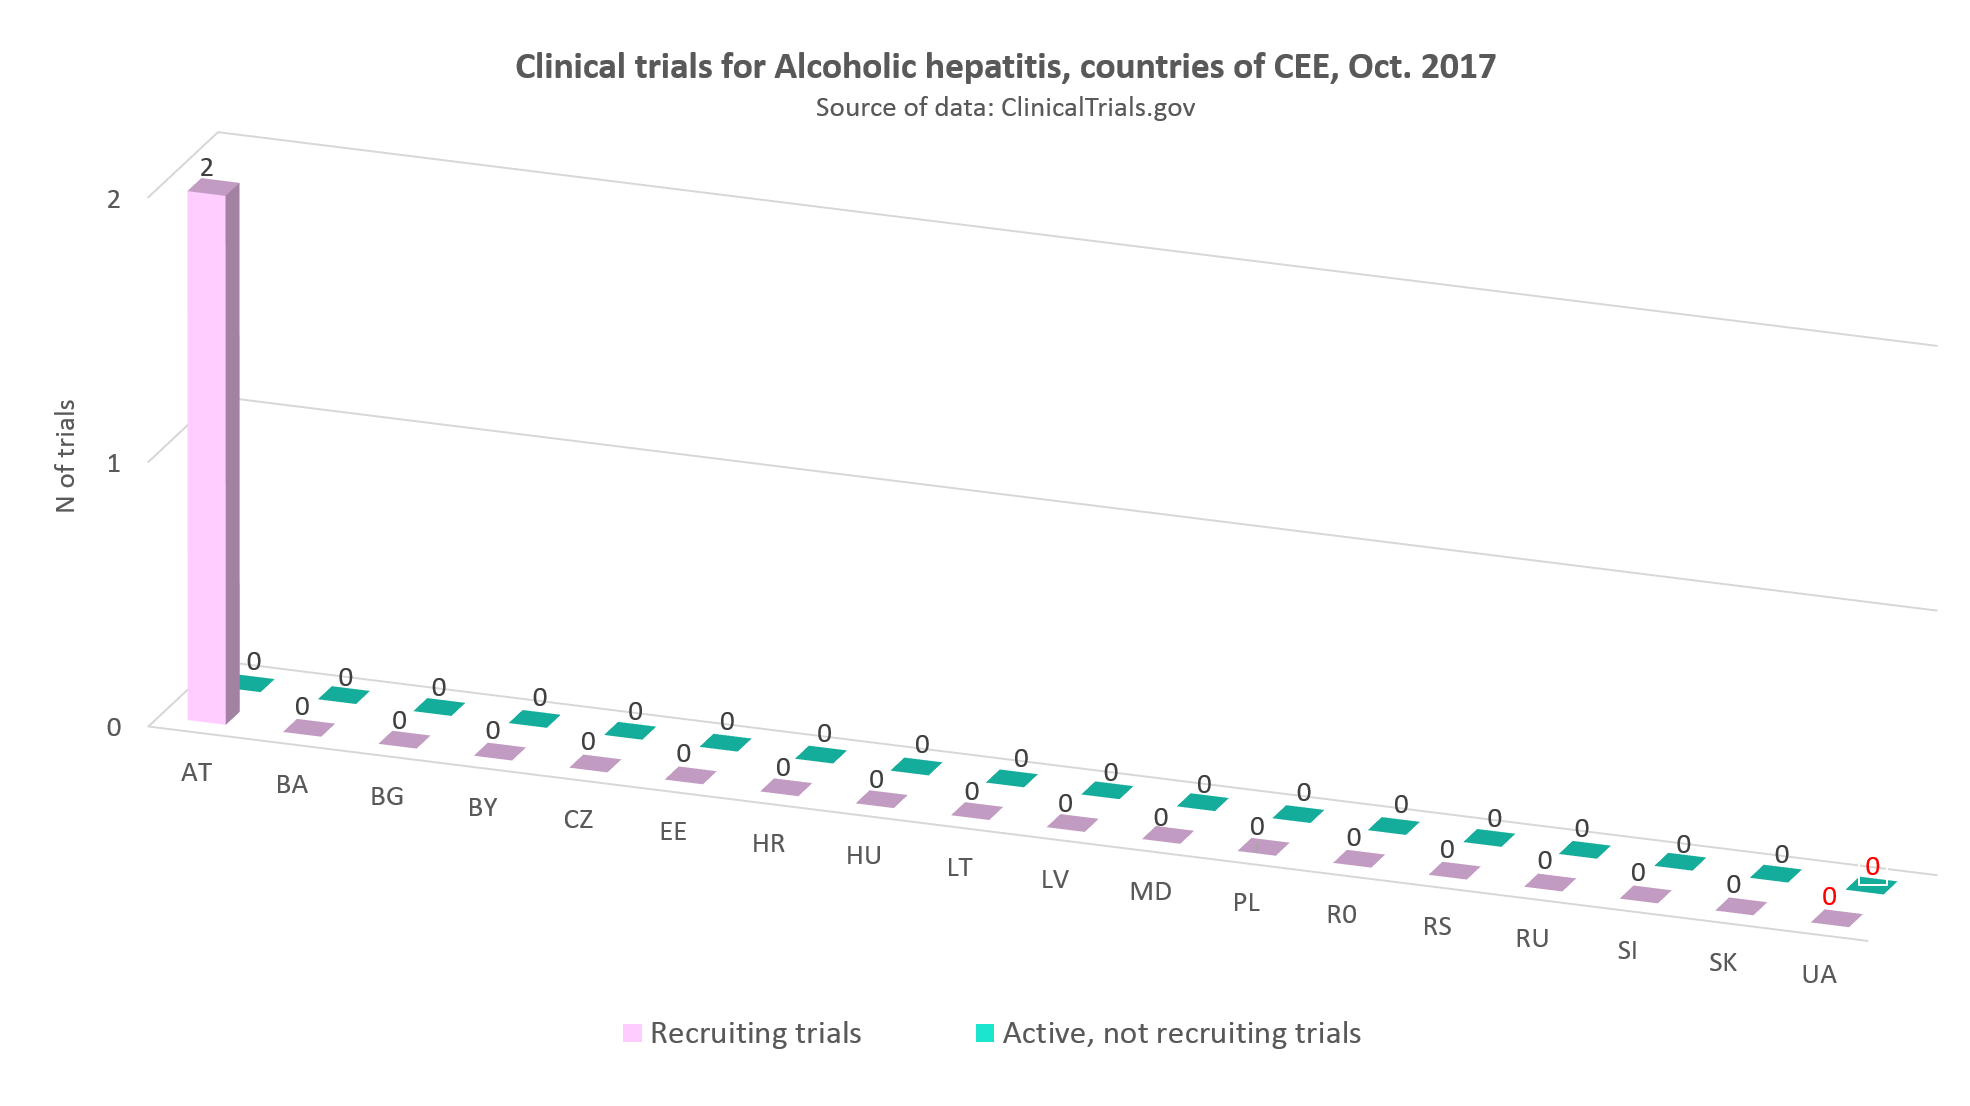 Clinical trials for alcohol hepatitis in the countries of CEE, Оctober 2017